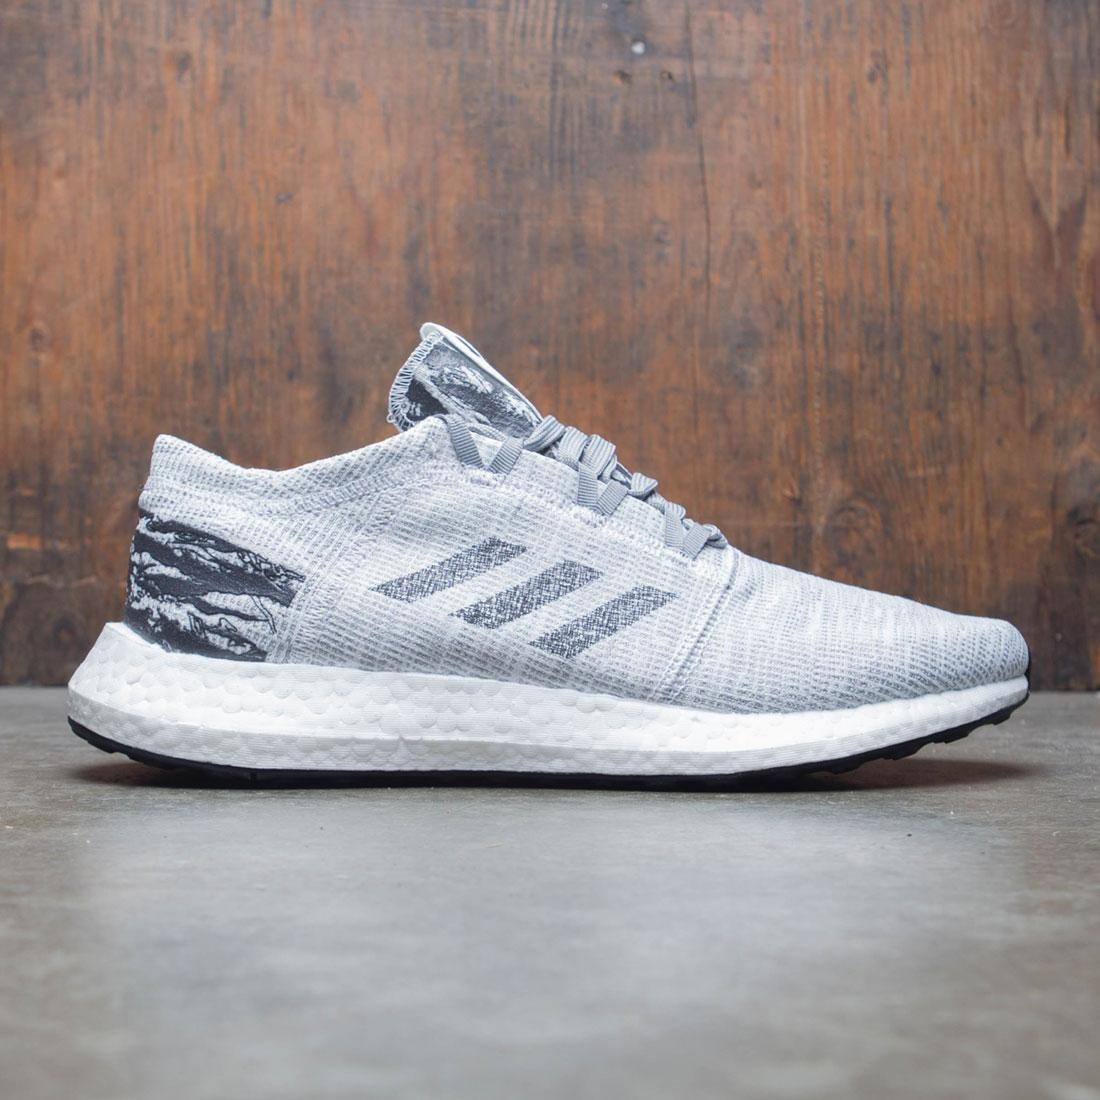 Adidas x Undefeated Men Pureboost GO (gray / shift grey / cinder / utility black)